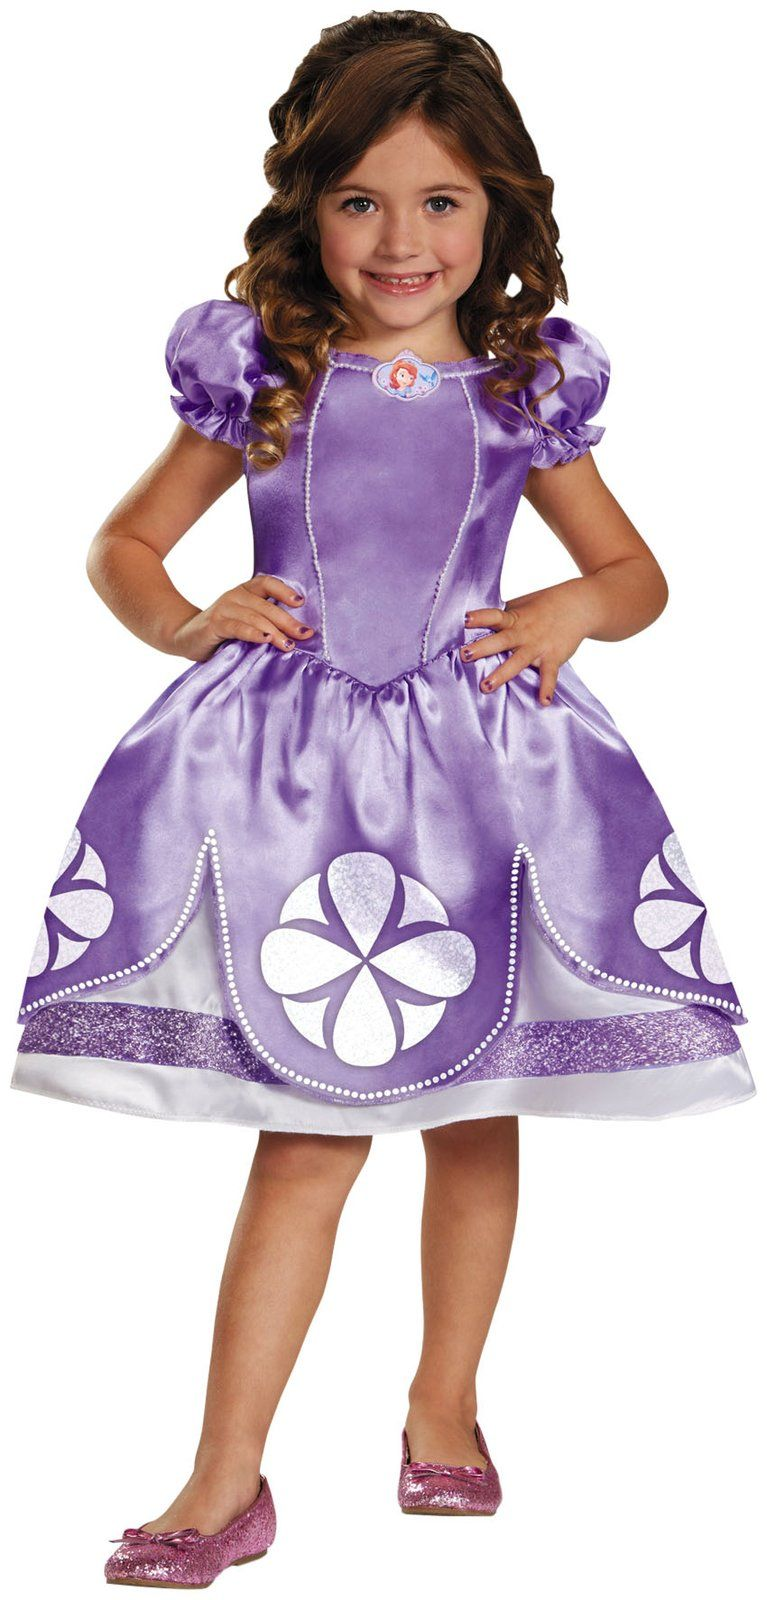 sofia the first from disney junior is the princess of the hour, and